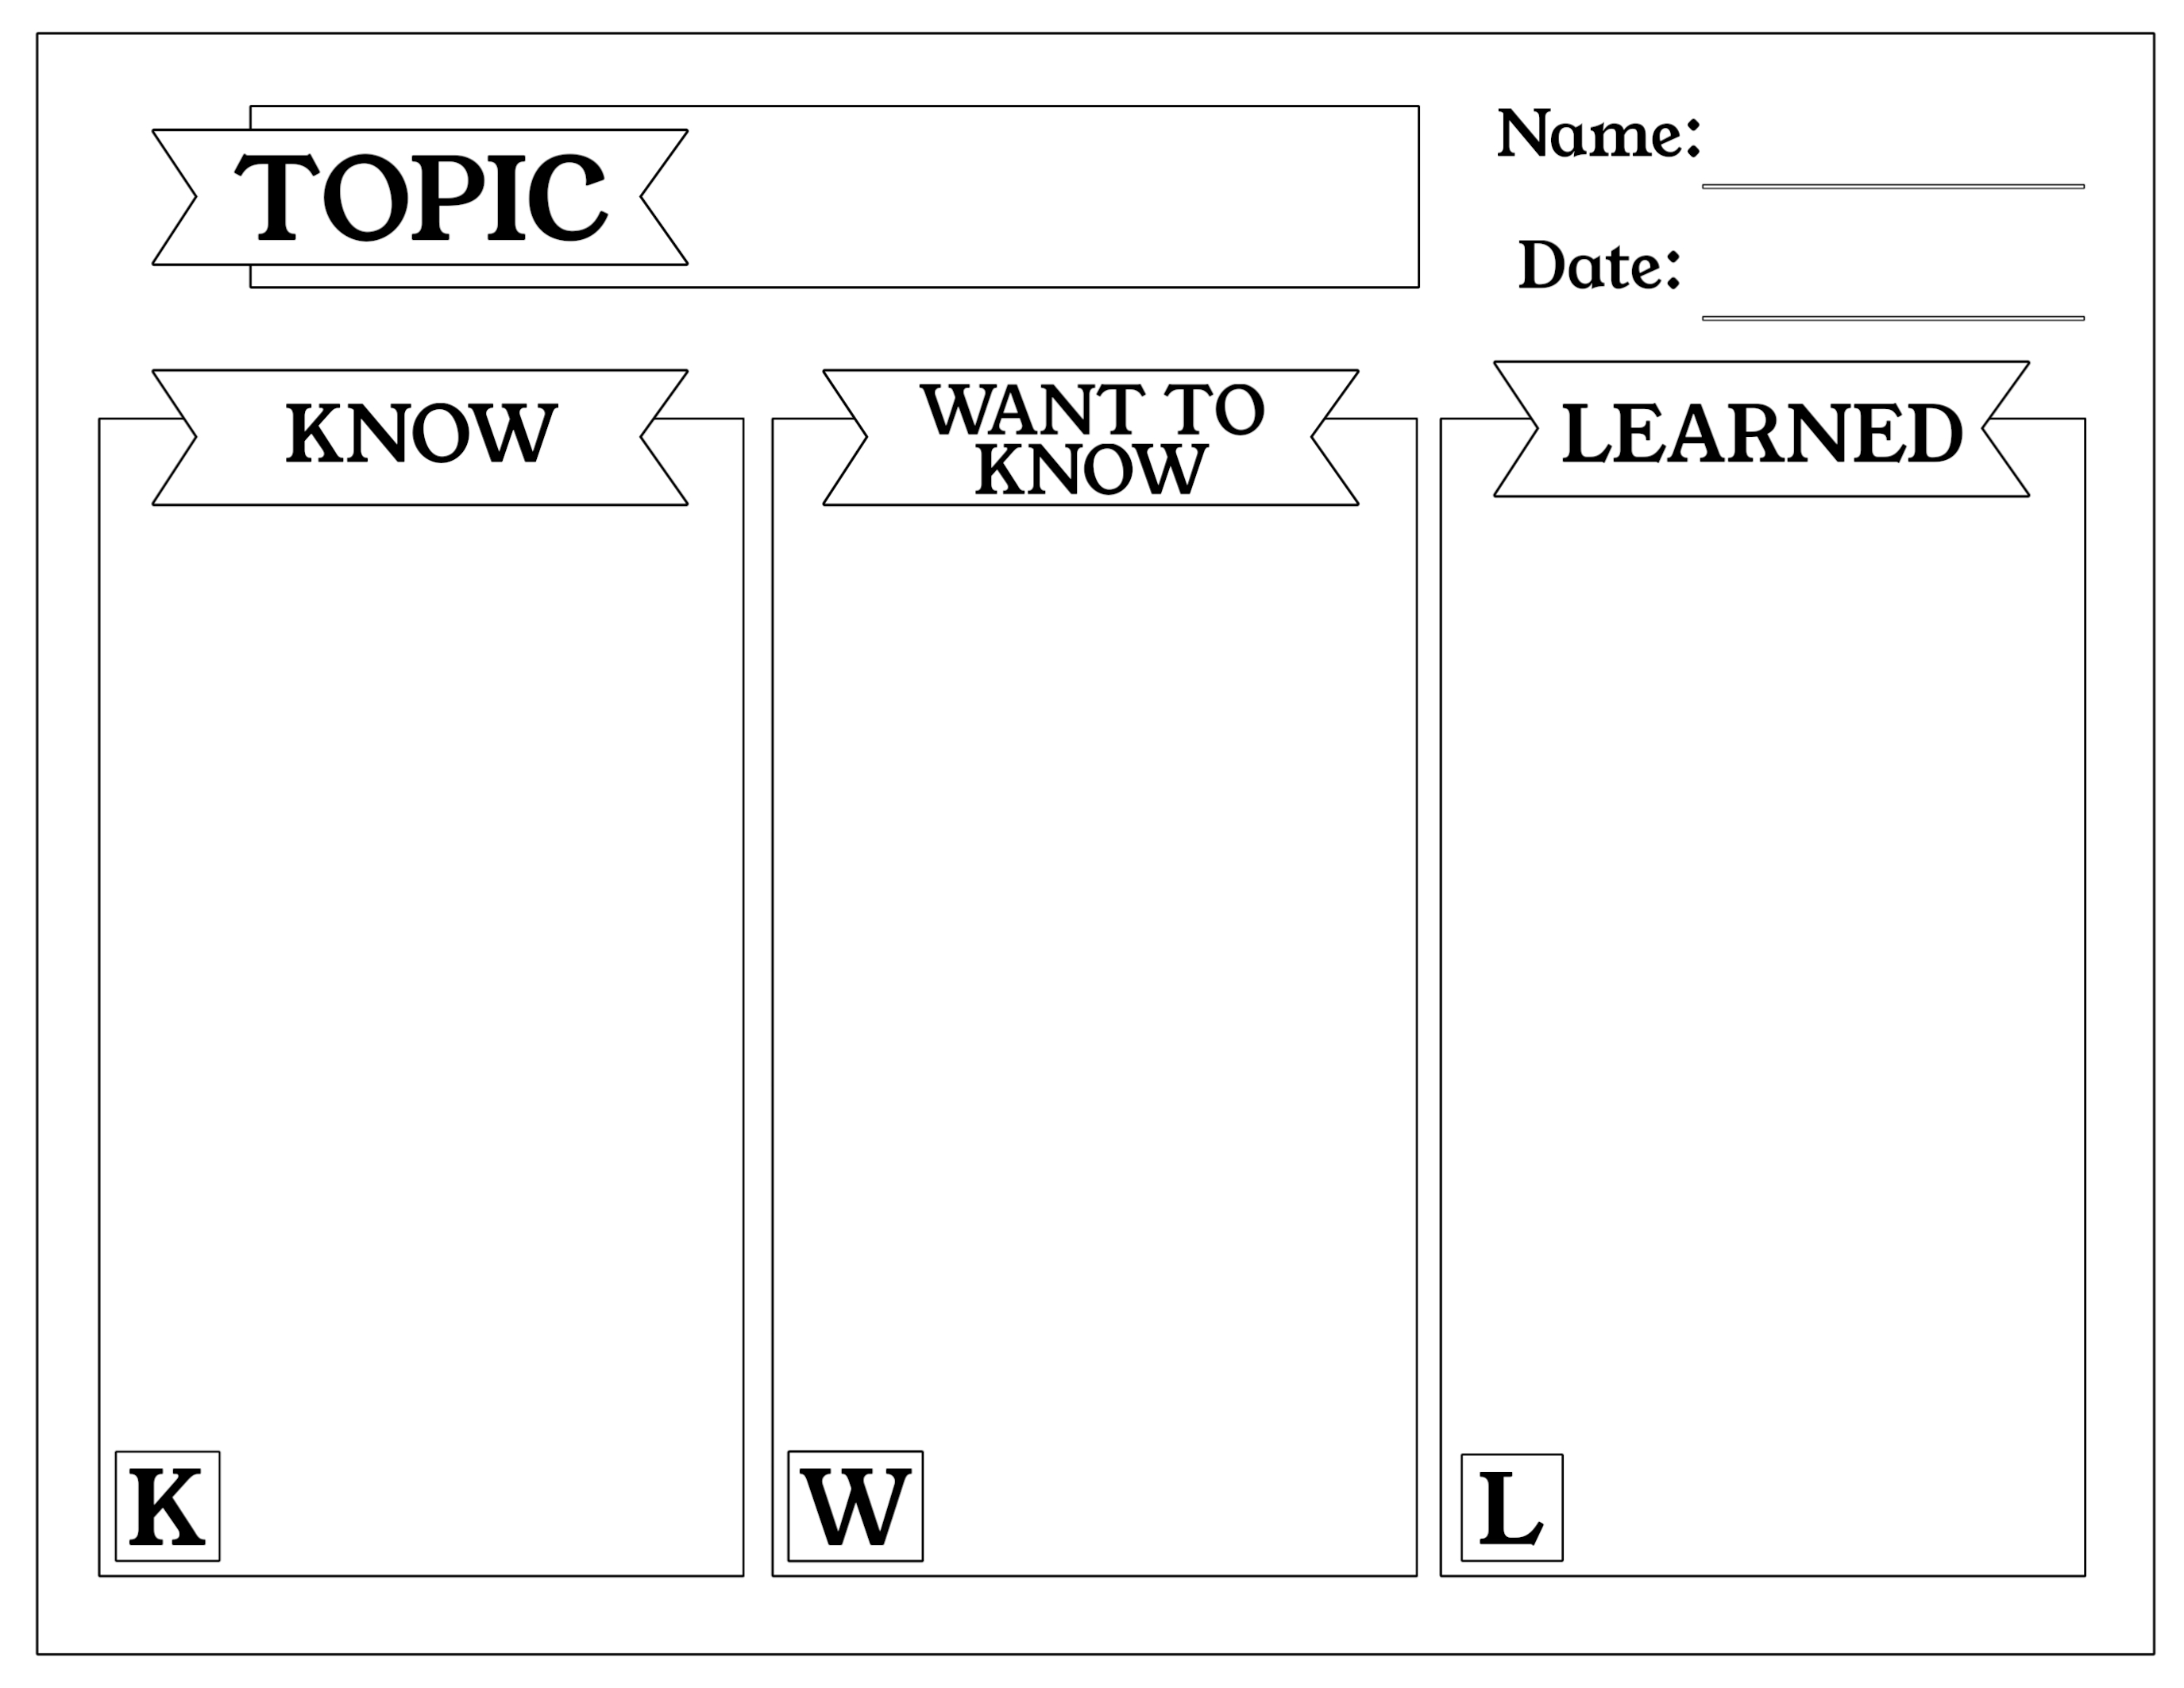 image relating to Printable Kwl Chart identify Absolutely free KWL Chart Printable Picture Organizer - Paper Path Structure